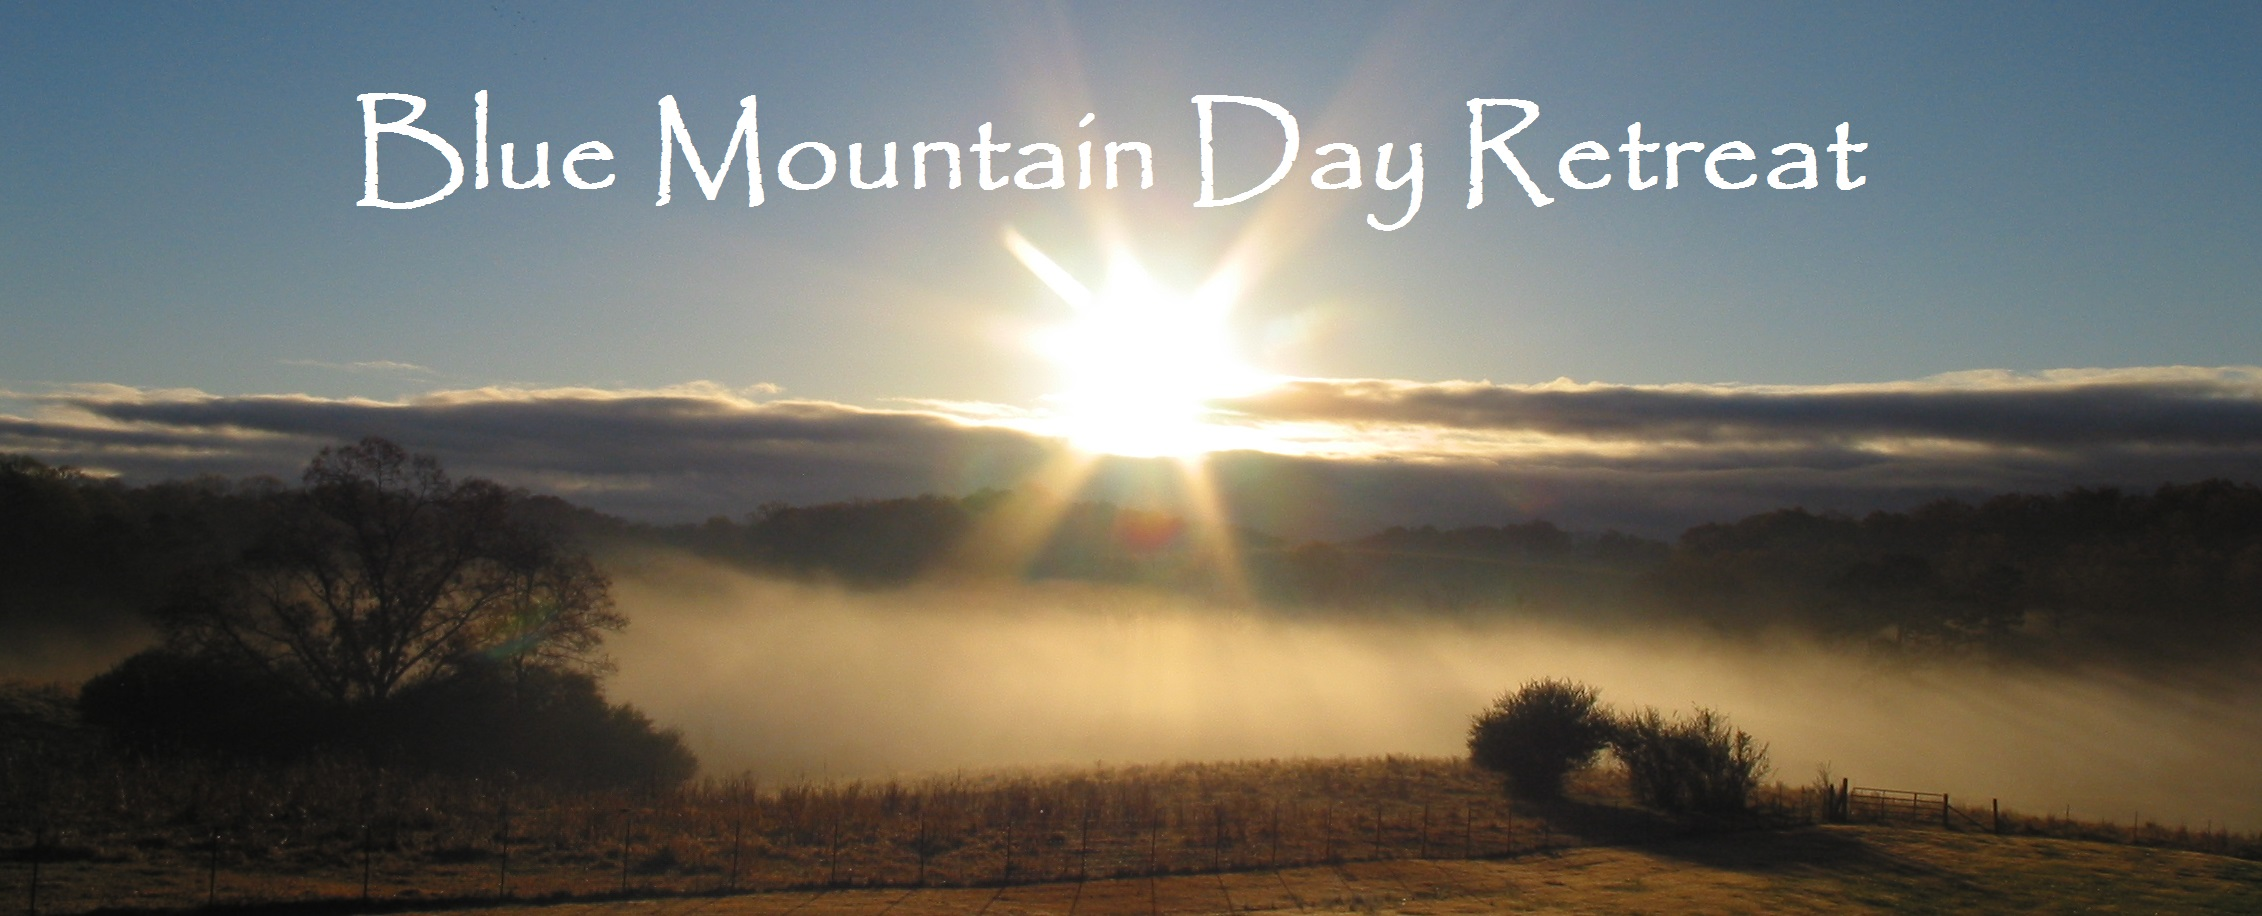 Blue Mountain Day Retreat Image